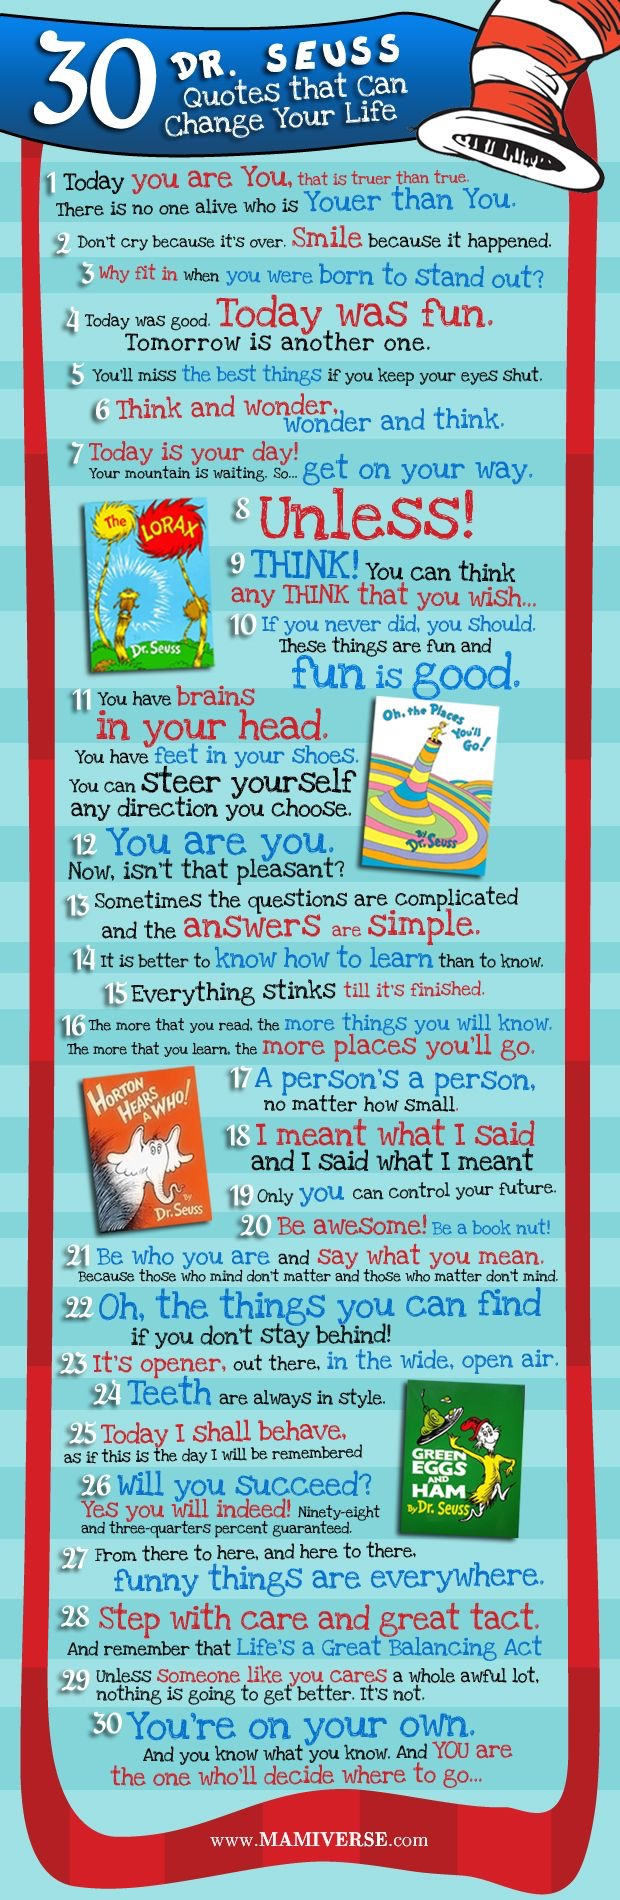 Quotes For Kids About Life 30 Classic Drseuss Quotes That Will Change Your Lifeagain